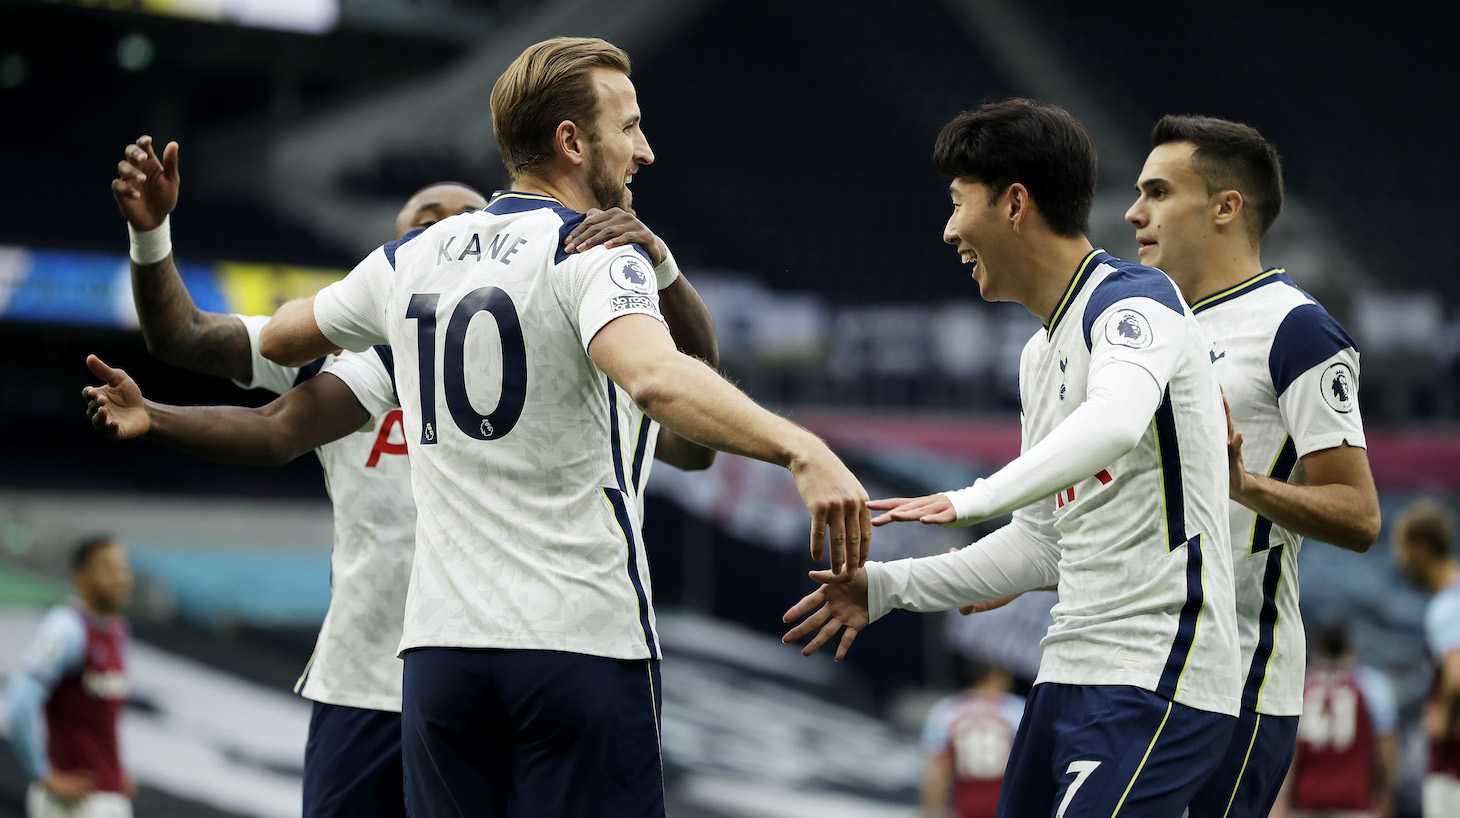 Harry Kane of Tottenham Hotspur celebrates with teammates after scoring his team's second goal during the Premier League match between Tottenham Hotspur and West Ham United at Tottenham Hotspur Stadium on October 18, 2020 in London, England. Sporting stadiums around the UK remain under strict restrictions due to the Coronavirus Pandemic as Government social distancing laws prohibit fans inside venues resulting in games being played behind closed doors.